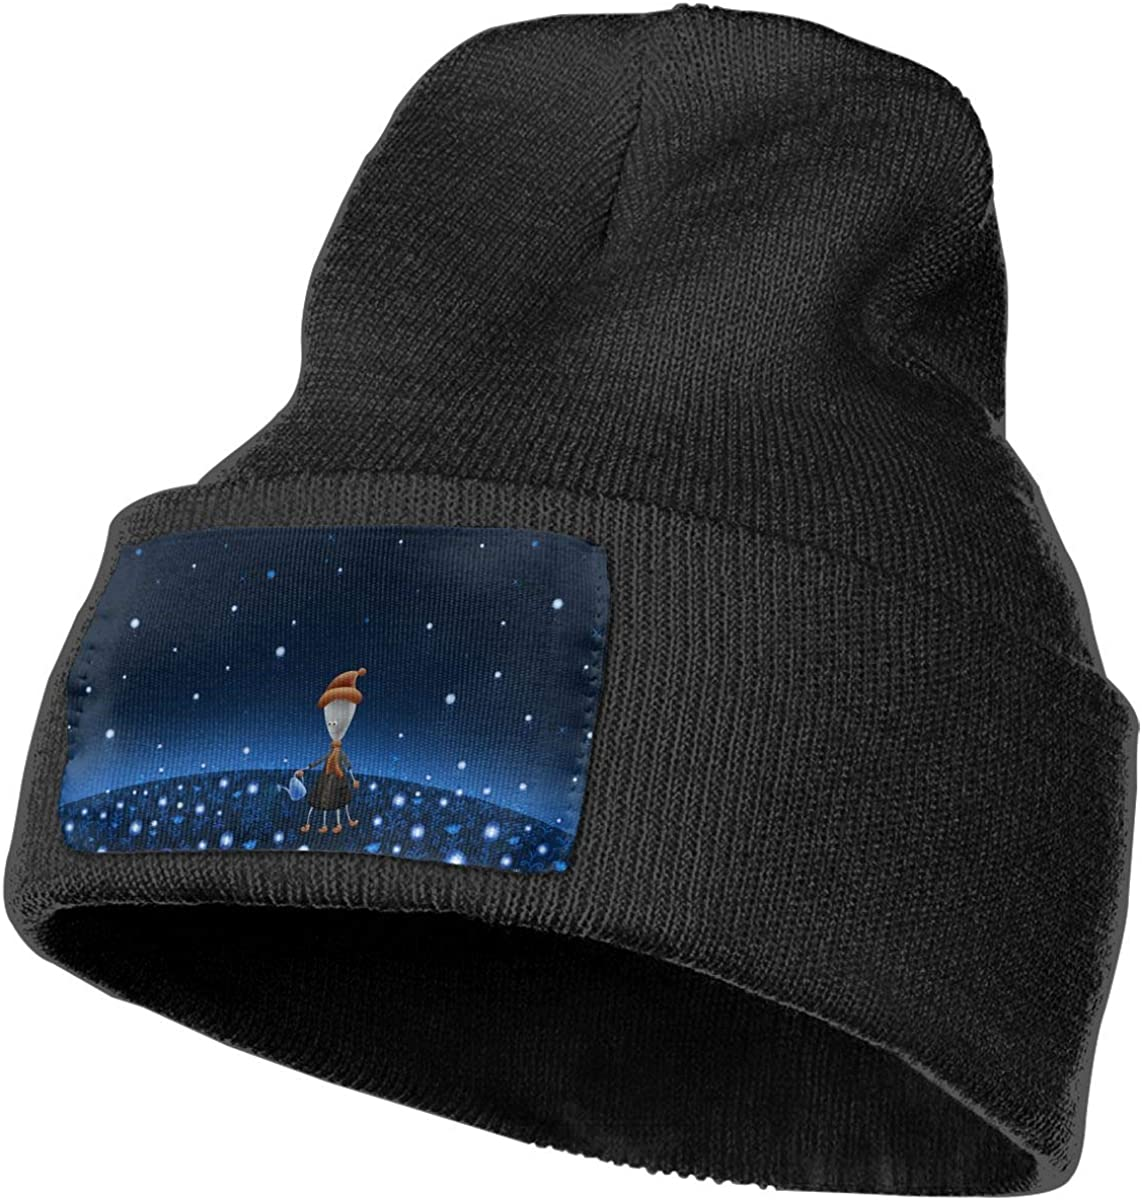 JimHappy Water Flowers Hat for Men and Women Winter Warm Hats Knit Slouchy Thick Skull Cap Black